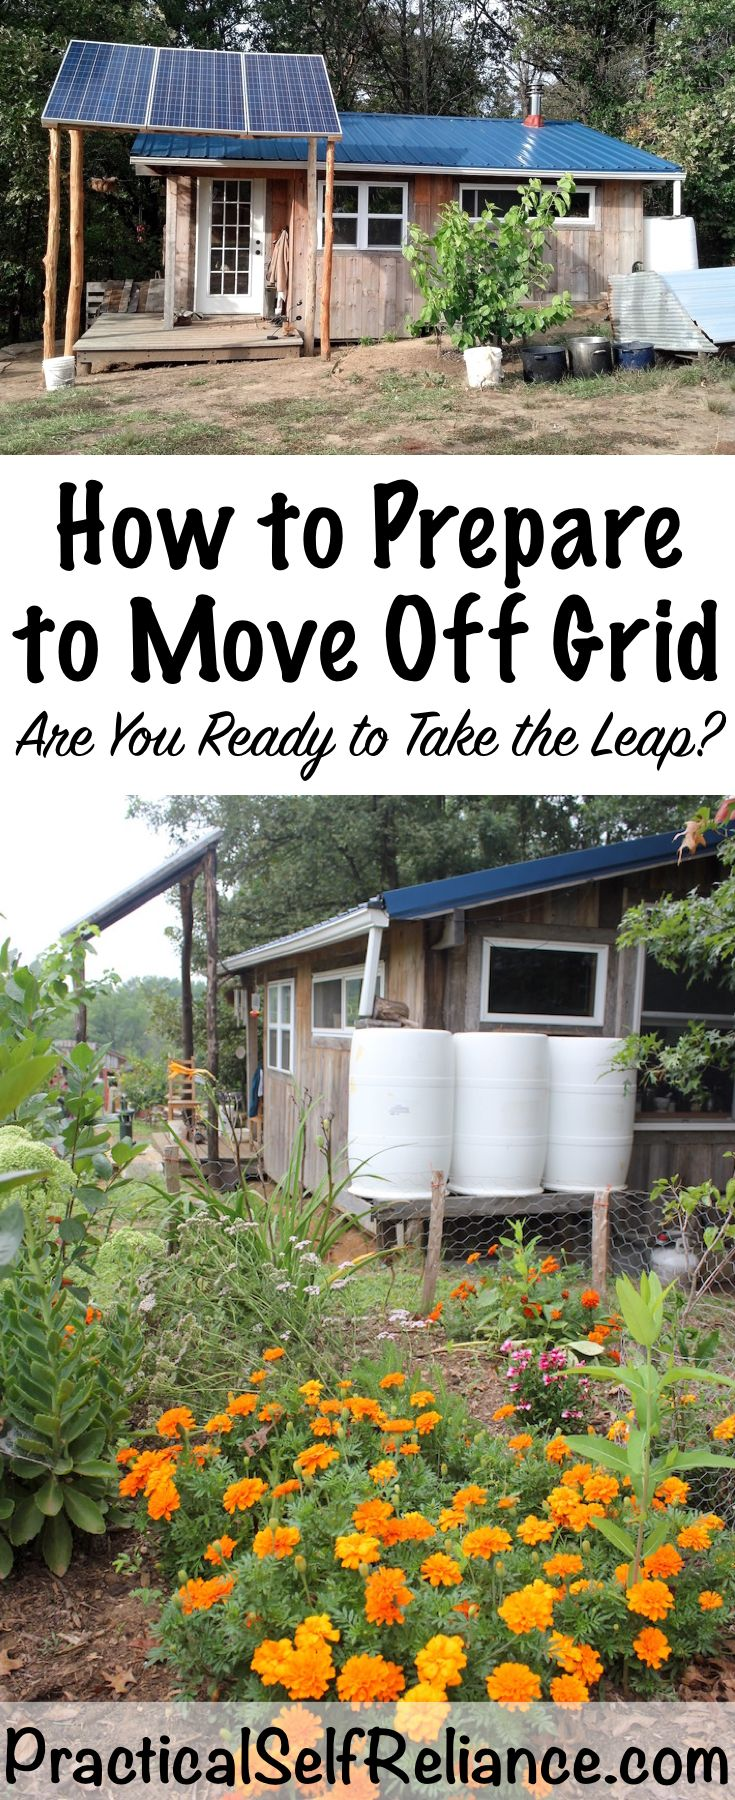 When we found our off grid homestead, we definitely weren't ready.  We didn't know the first thing about off grid living.  Honestly, we'd never even considered living off grid until we found our dream homestead.  Looking back, off grid is a perfect fit with everything we'd wanted out of a homestead.  If you're hoping for...Read More